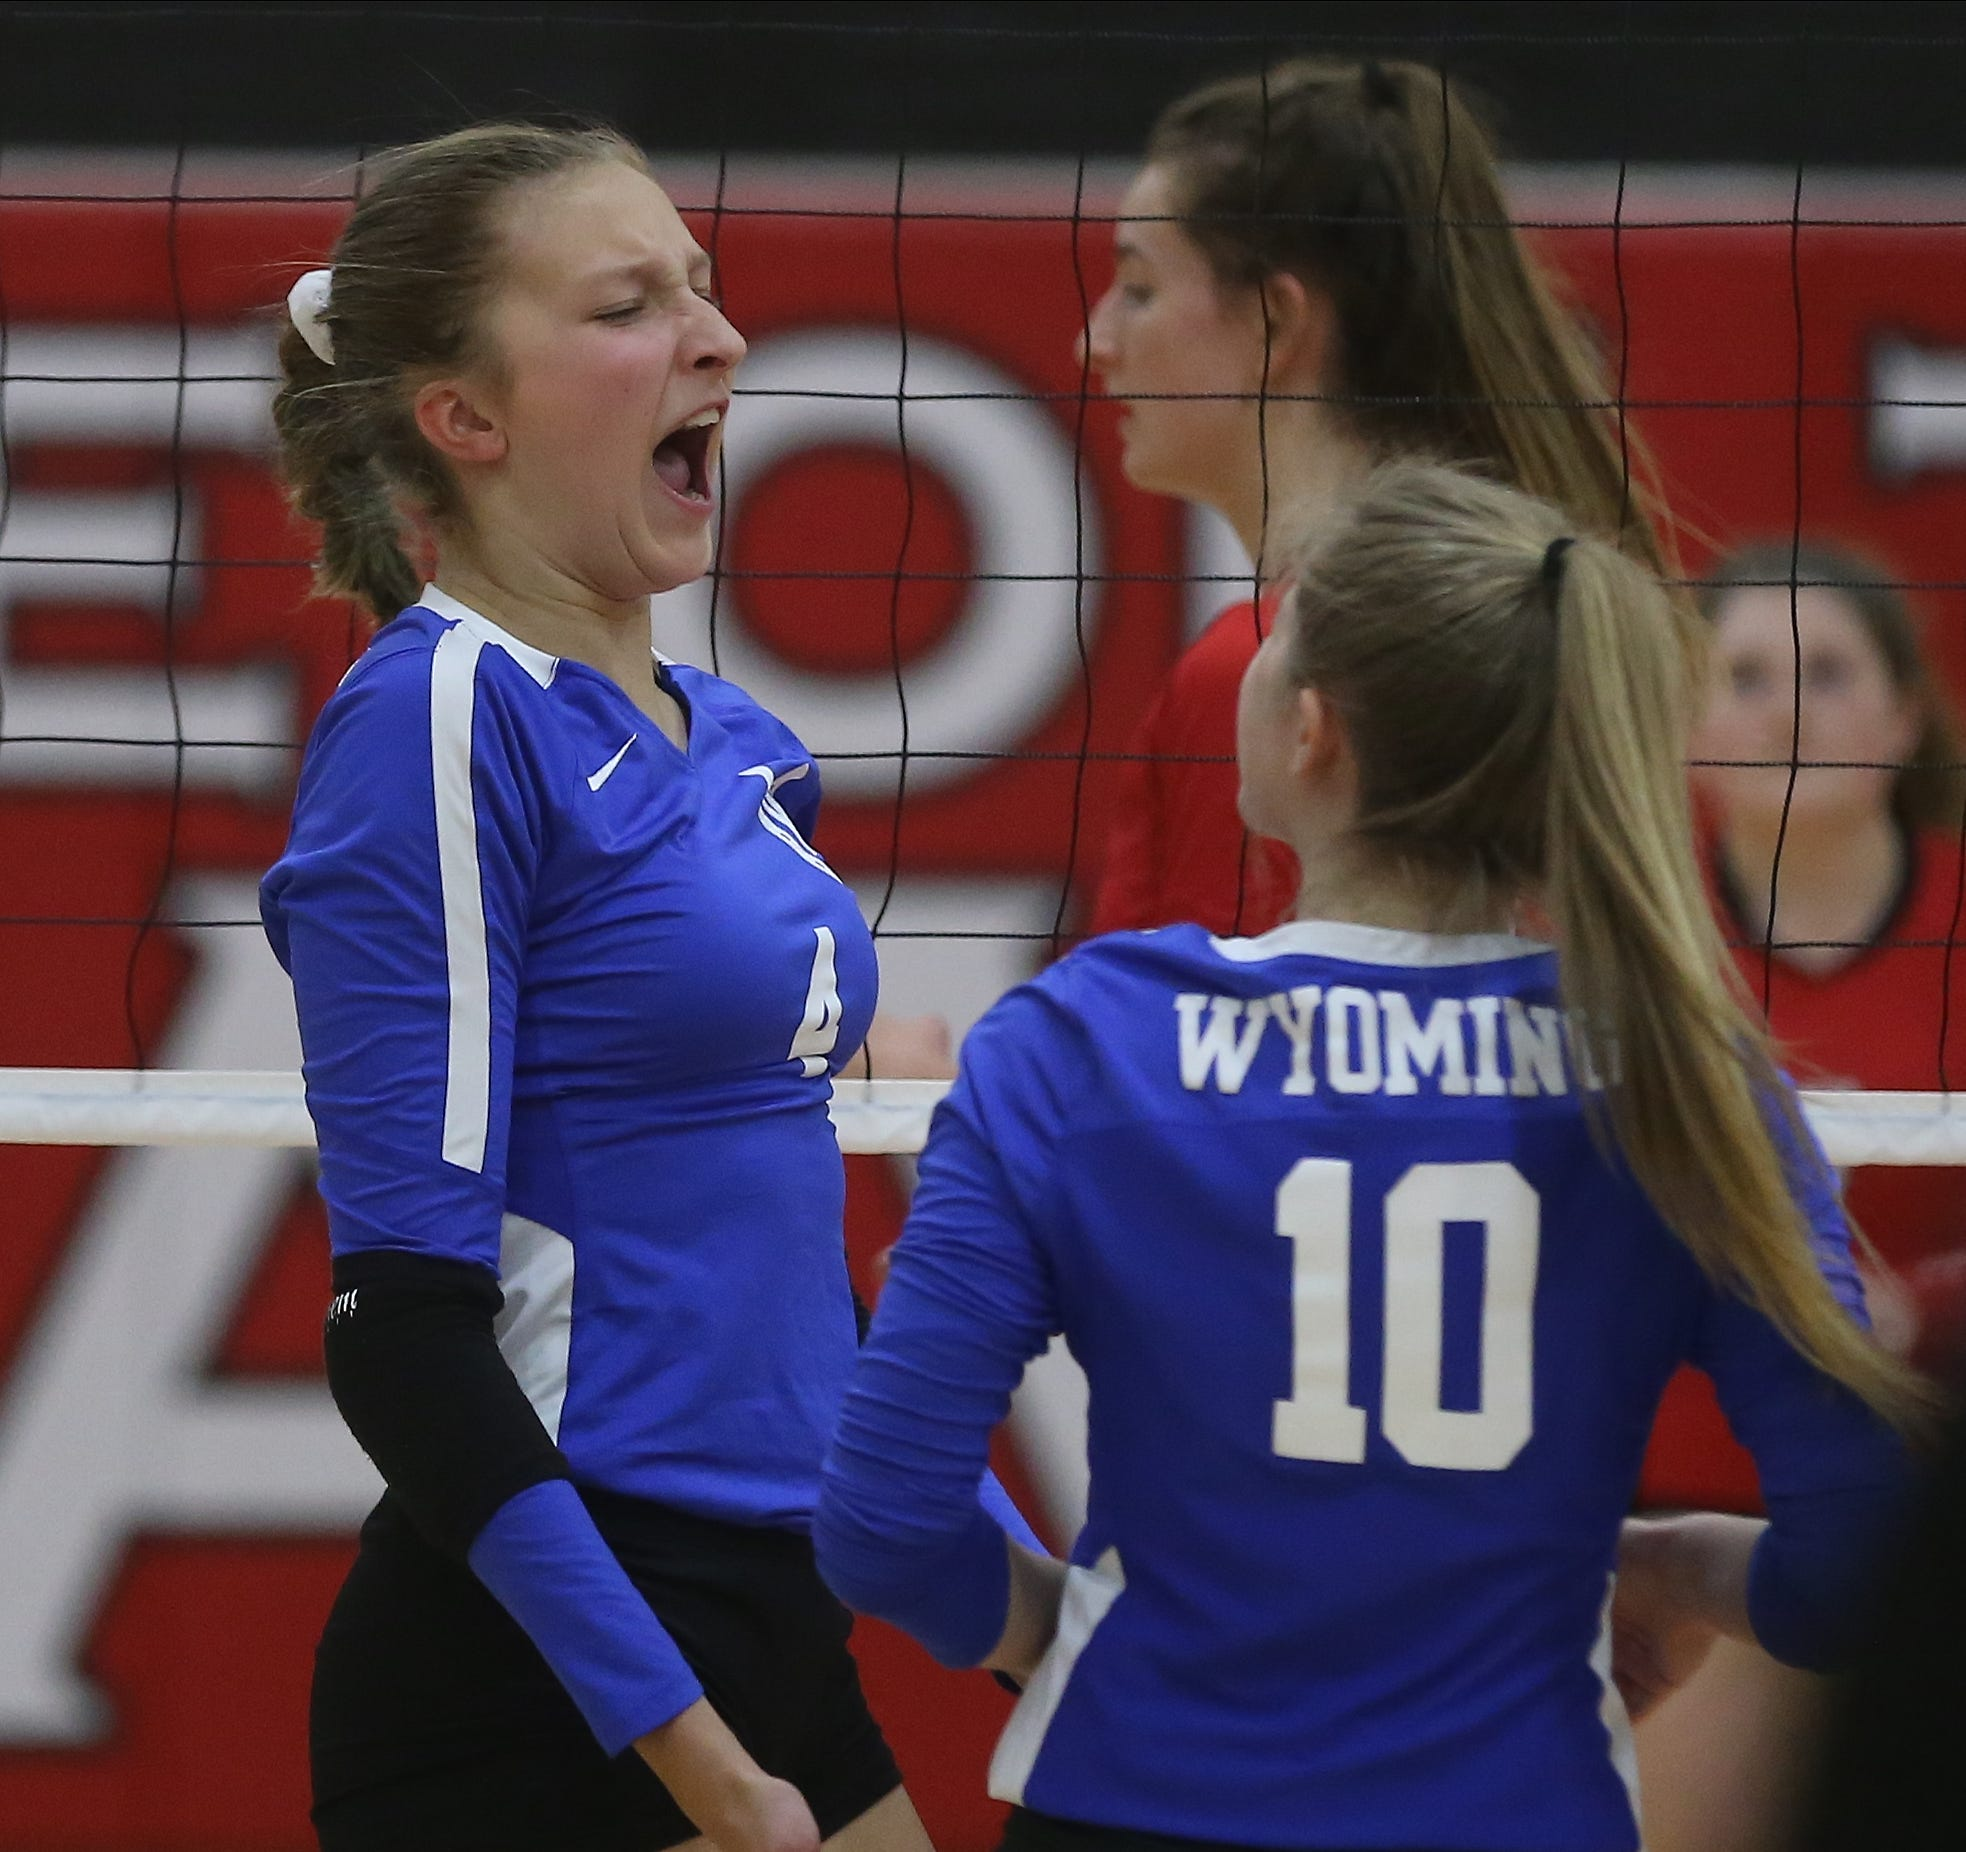 Wyoming player Allie Cordes (4) reacts the Cowboys' Cincinnati Hills League volleyball game against Indian Hill, Thursday, Oct. 10, 2019.